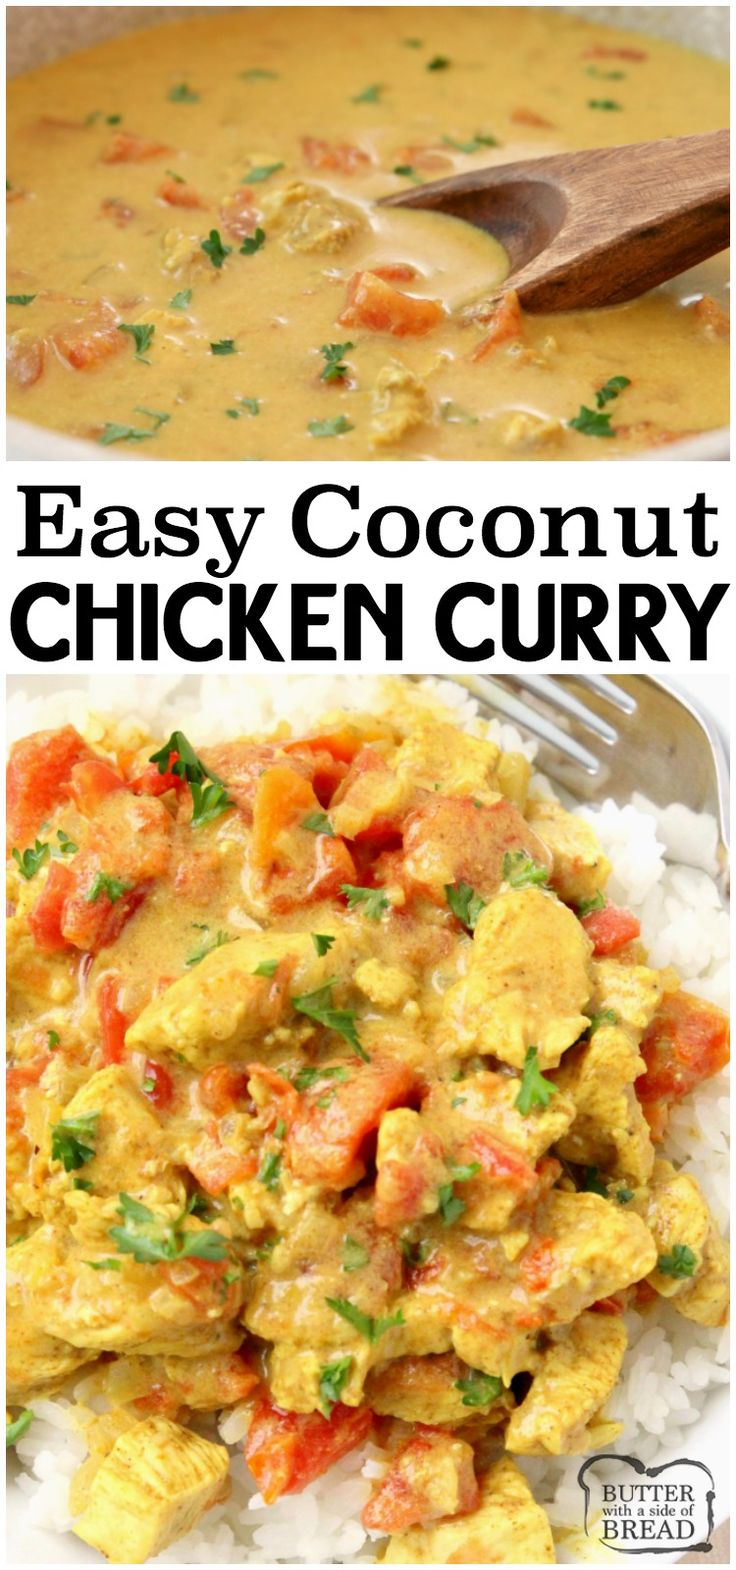 Coconut Chicken Curry recipe perfect for a busy weeknight meal! Simple, flavorfu…